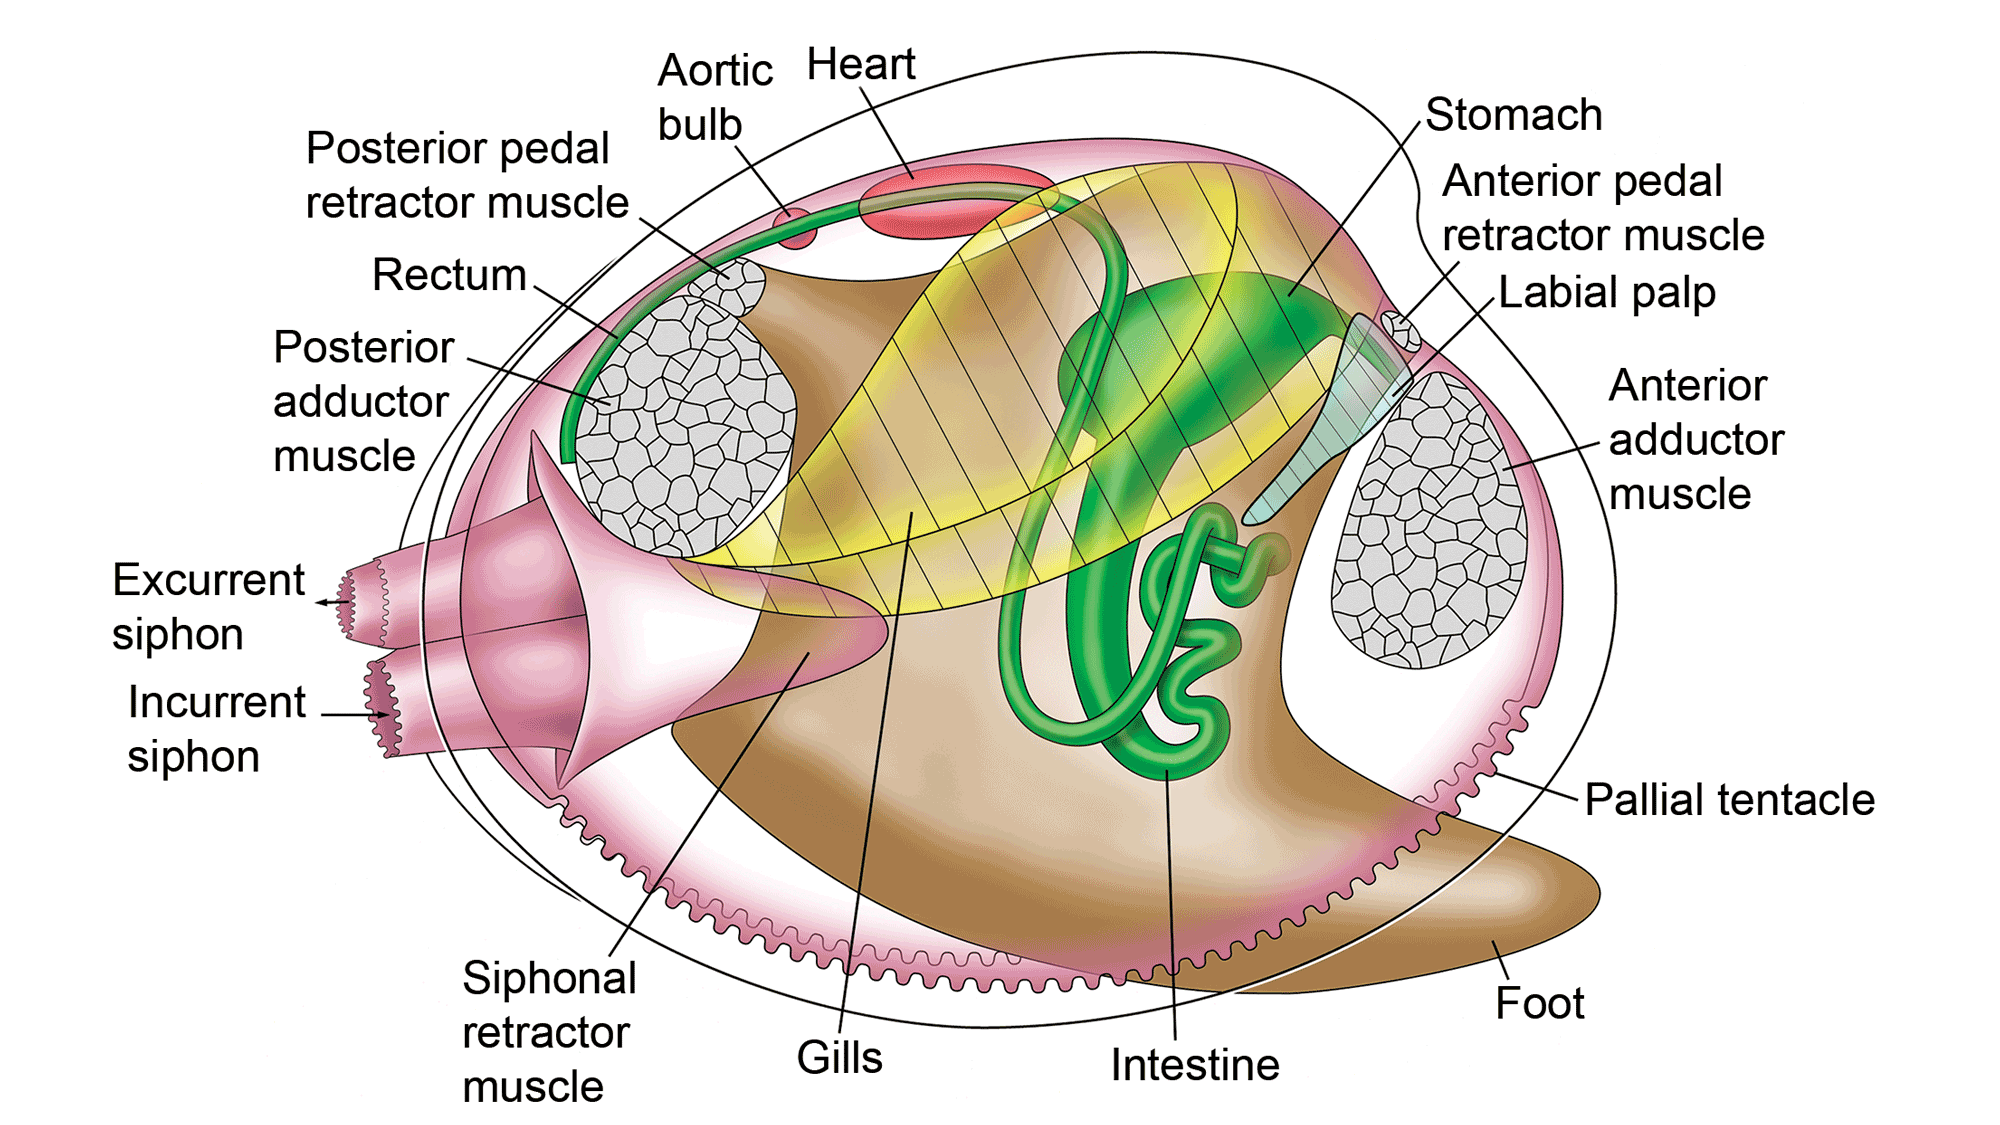 Illustration showing the internal anatomy of a bivalve, with the different parts labeled.